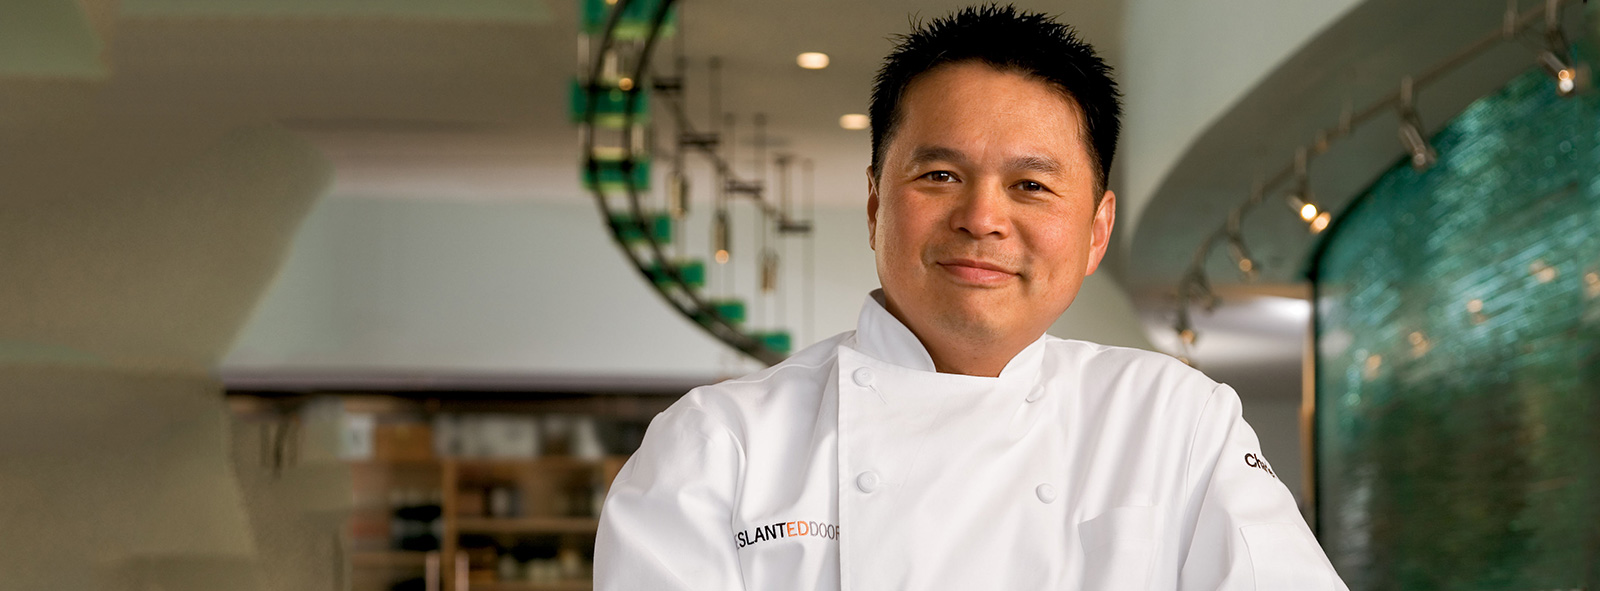 Image of First Republic Chefs / Restaurateurs client(s) Charles Phan